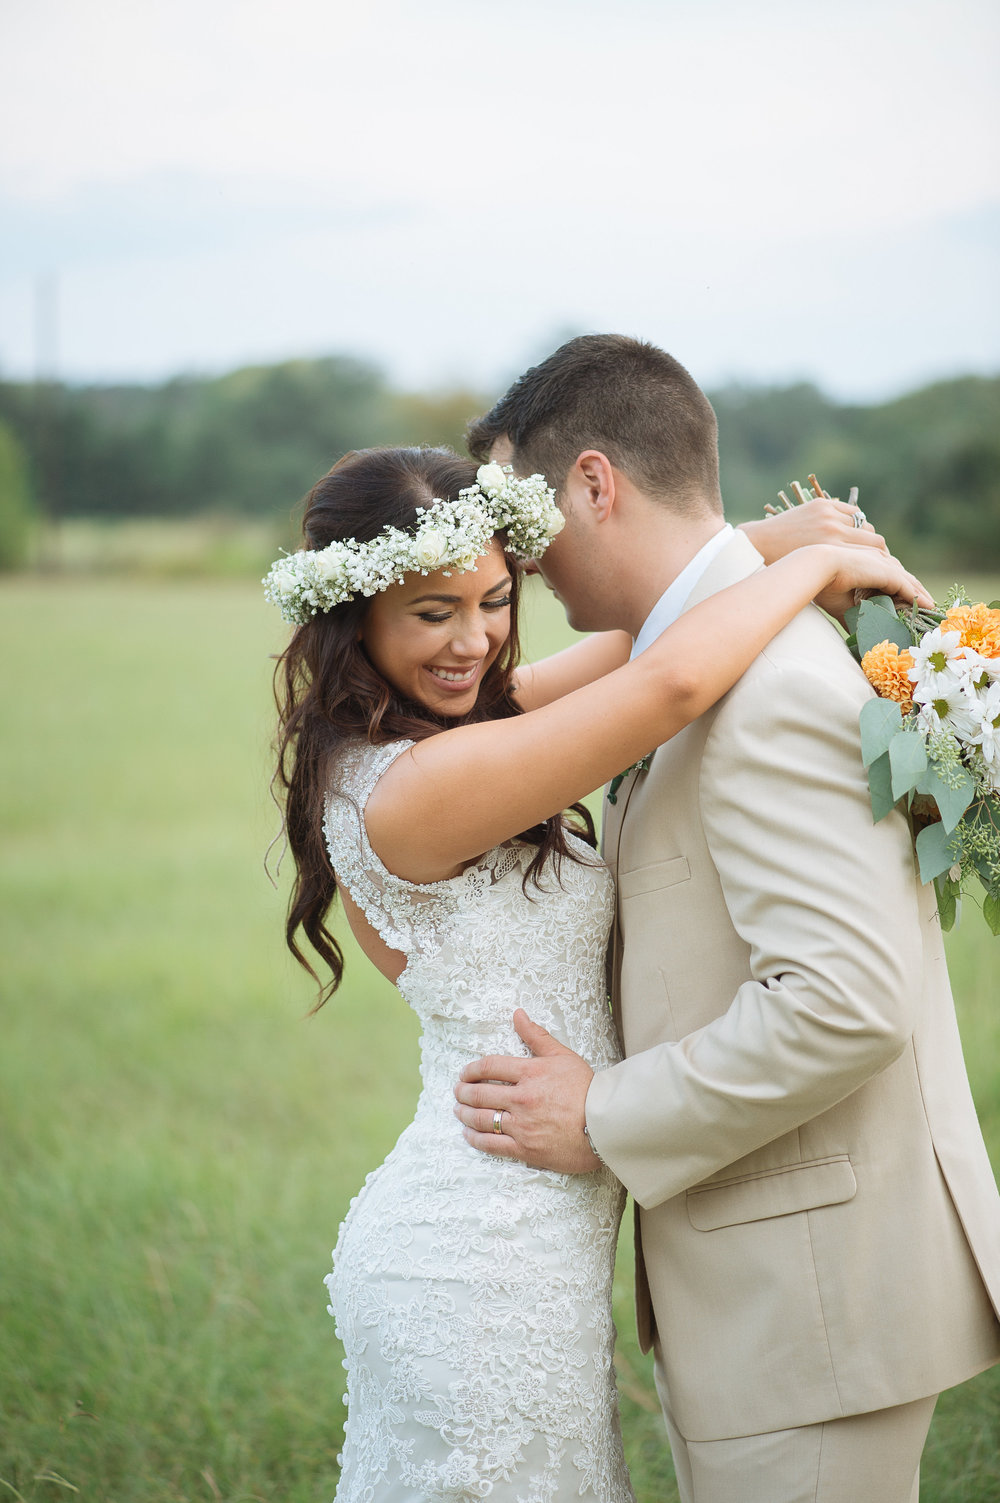 Plan Our Day Houston | Wedding Coordinators | Houston Tx, Wedding Planners | Ranch House Chapel Wedding